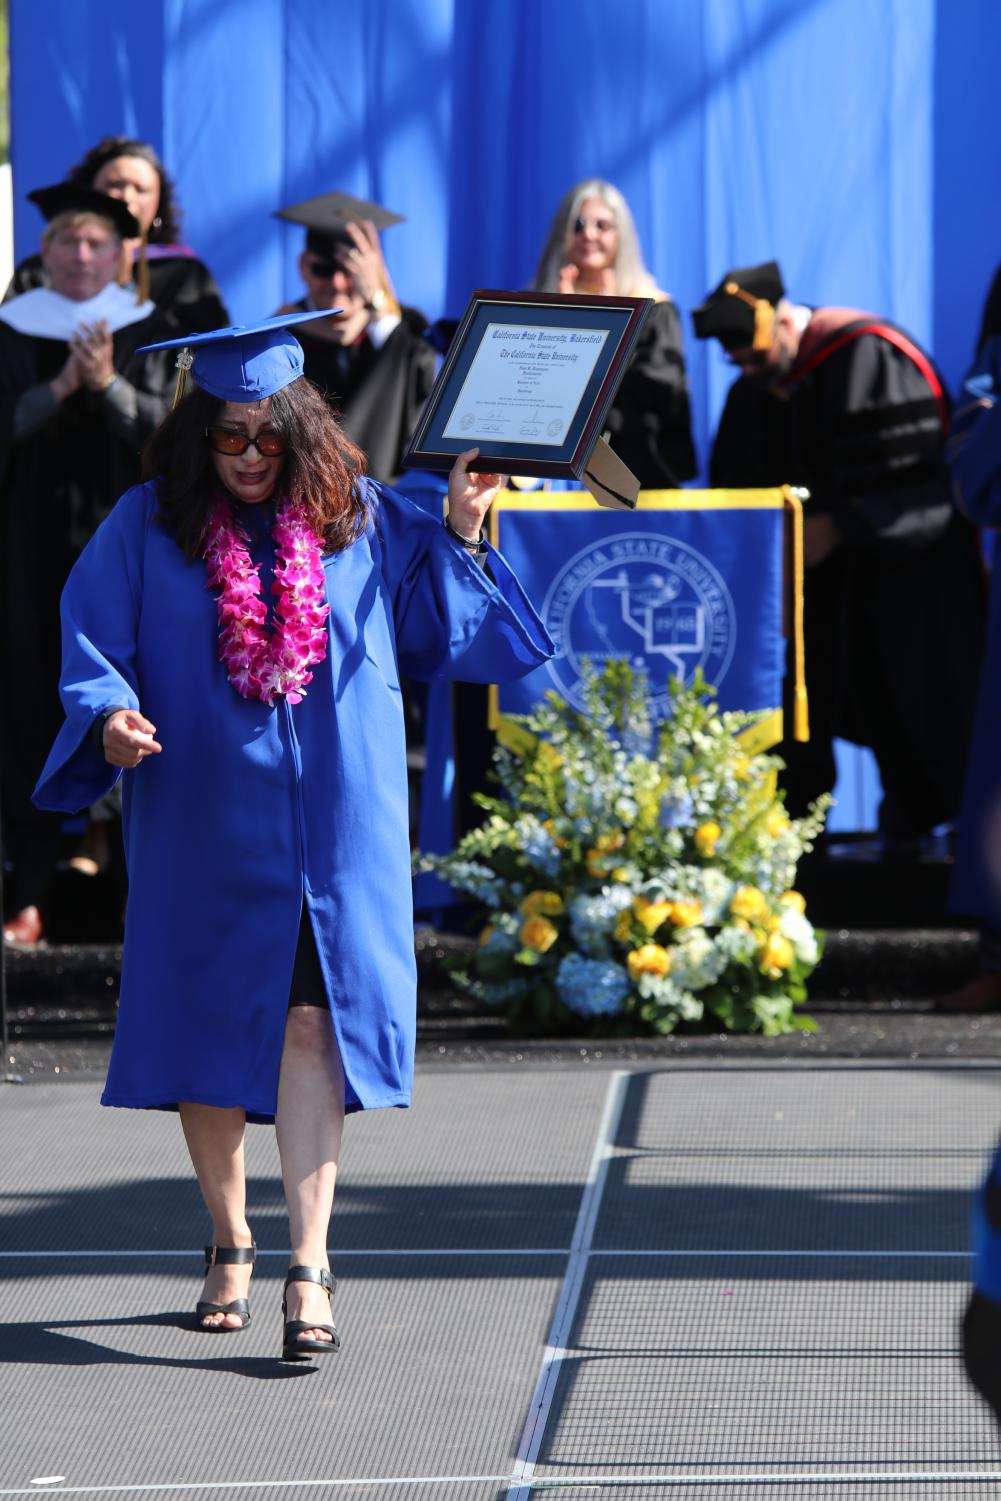 Photo by Sergio Hernandez: Tracy Dominguez accepted her late daughter Demi Dominguez's Posthumous Degree during the Undergraduate Ceremony on May 24, 2019.